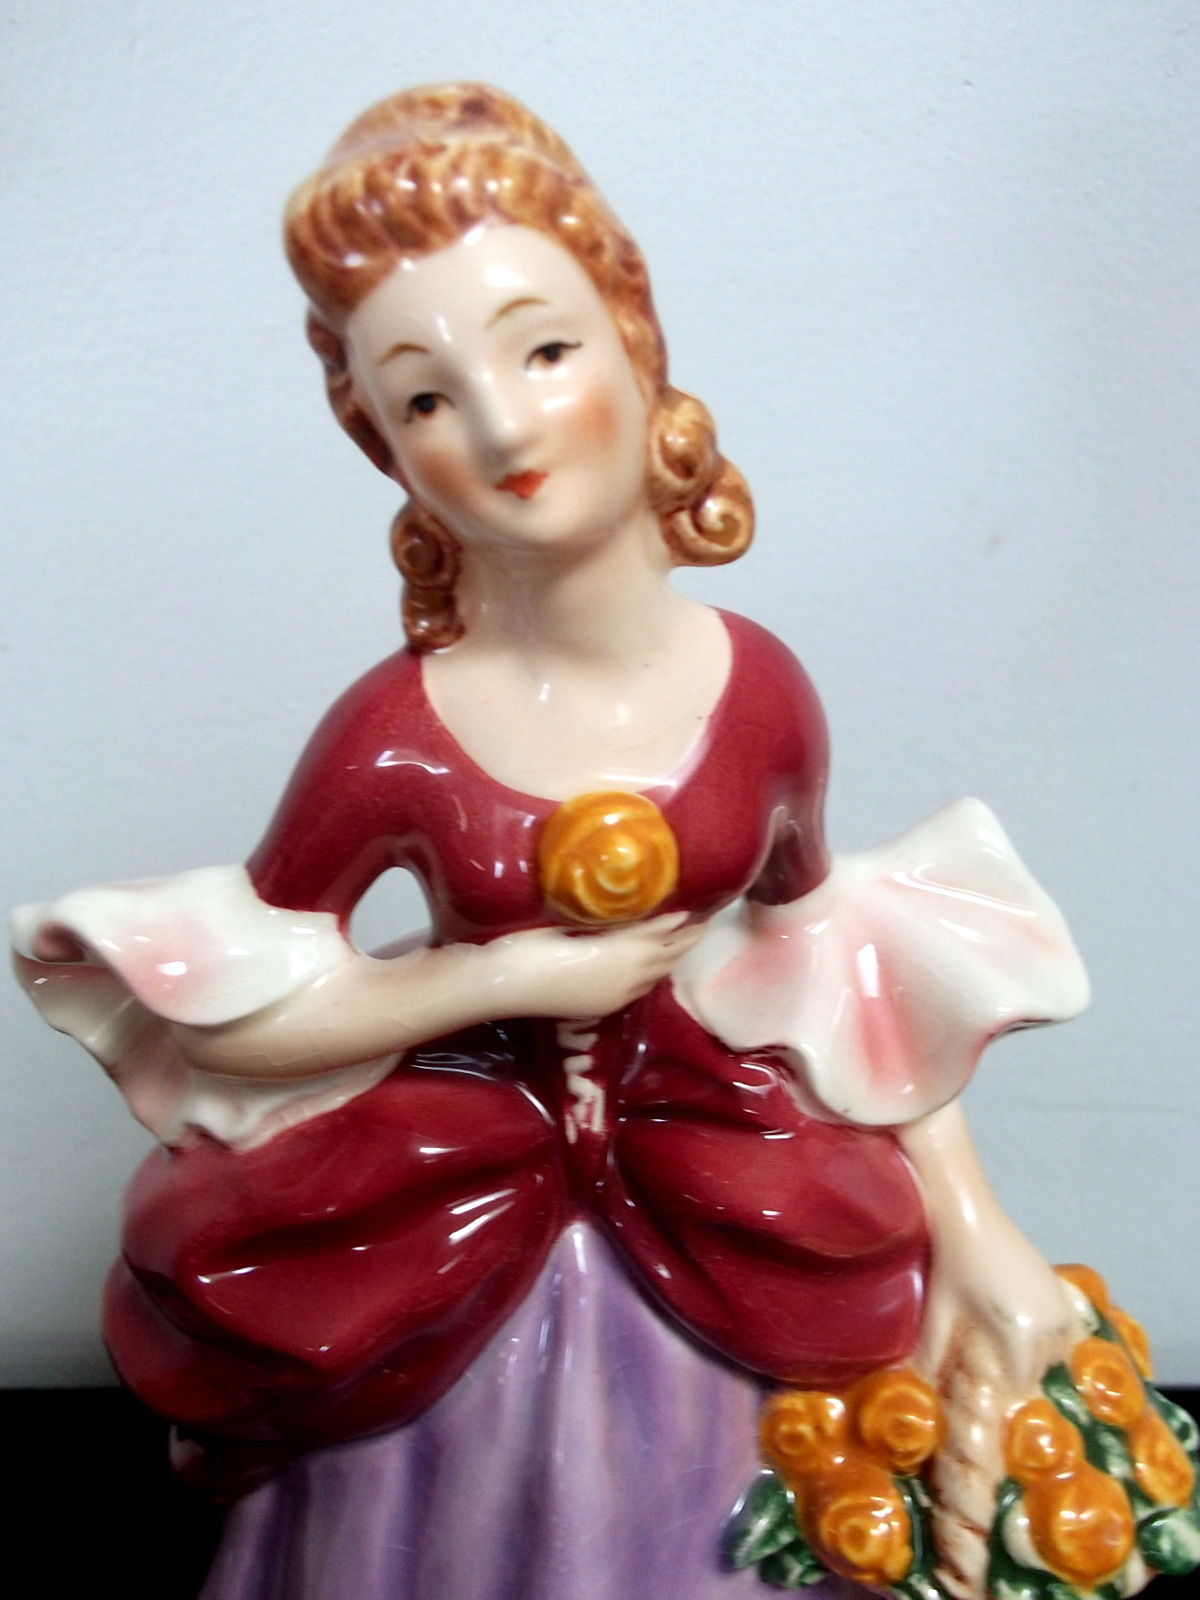 Goebel Germany Lady with Flower Basket Figurine